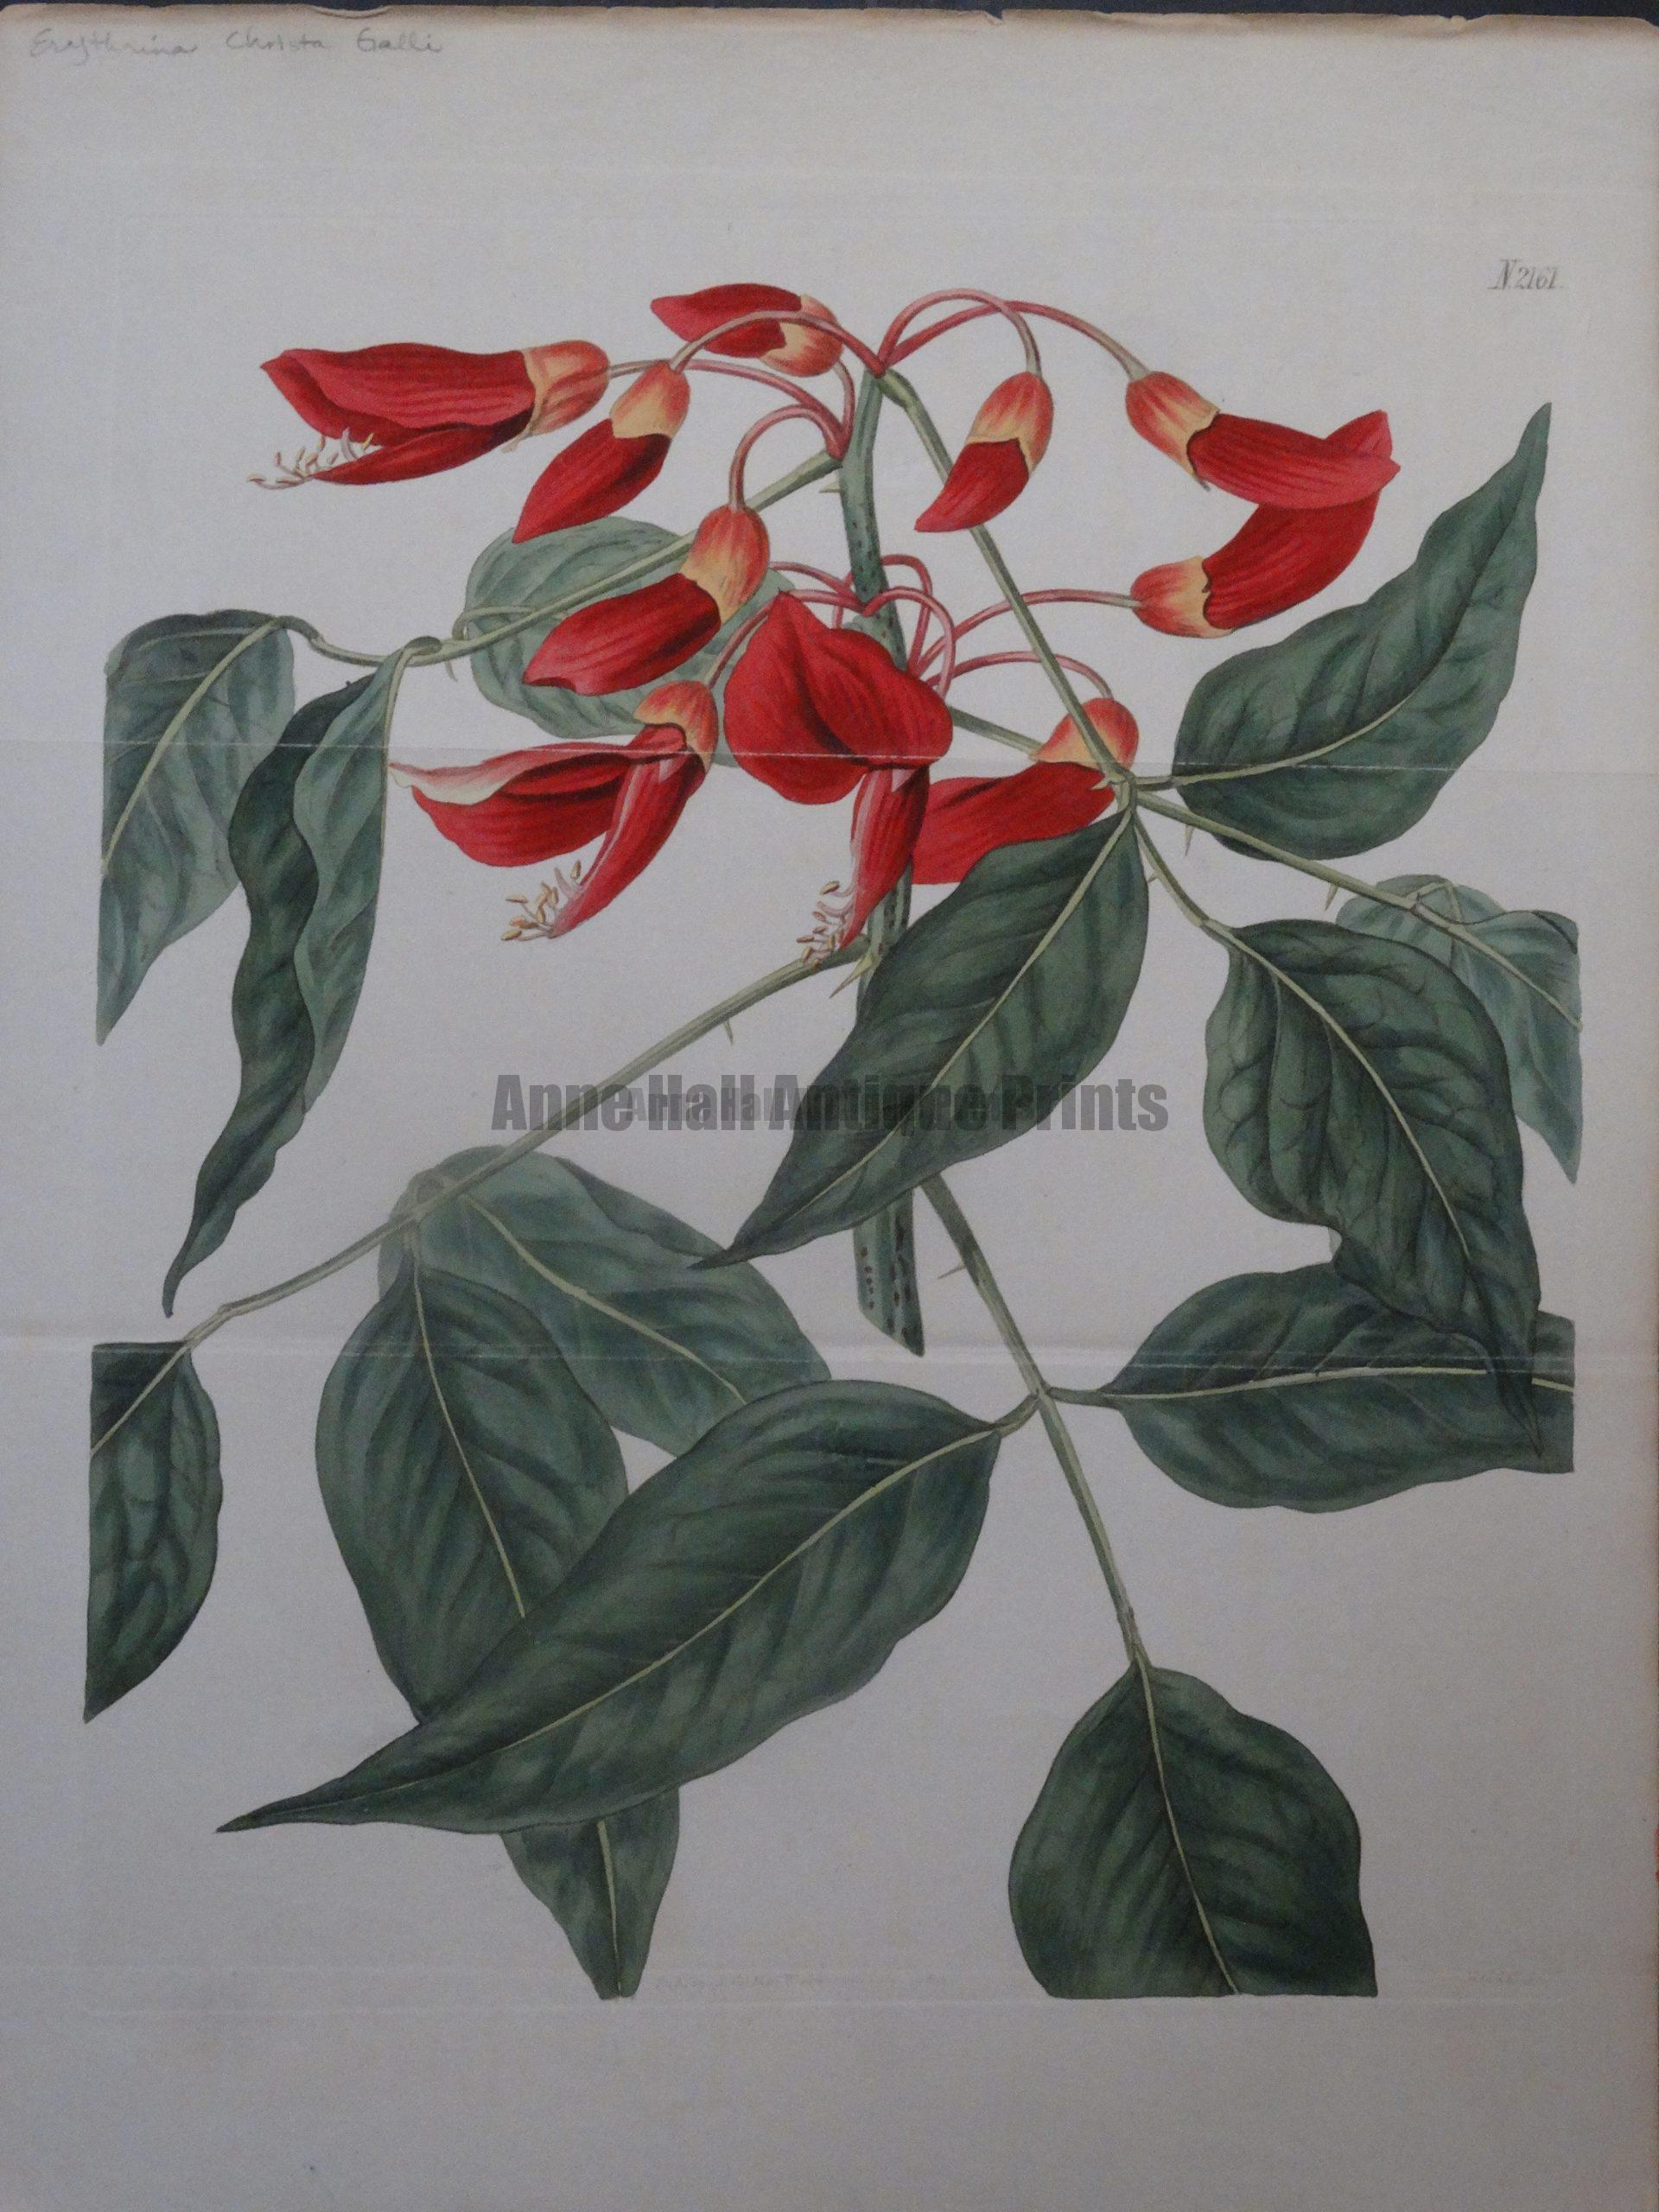 Curtis Erythrina Christa Galli Plate 2161